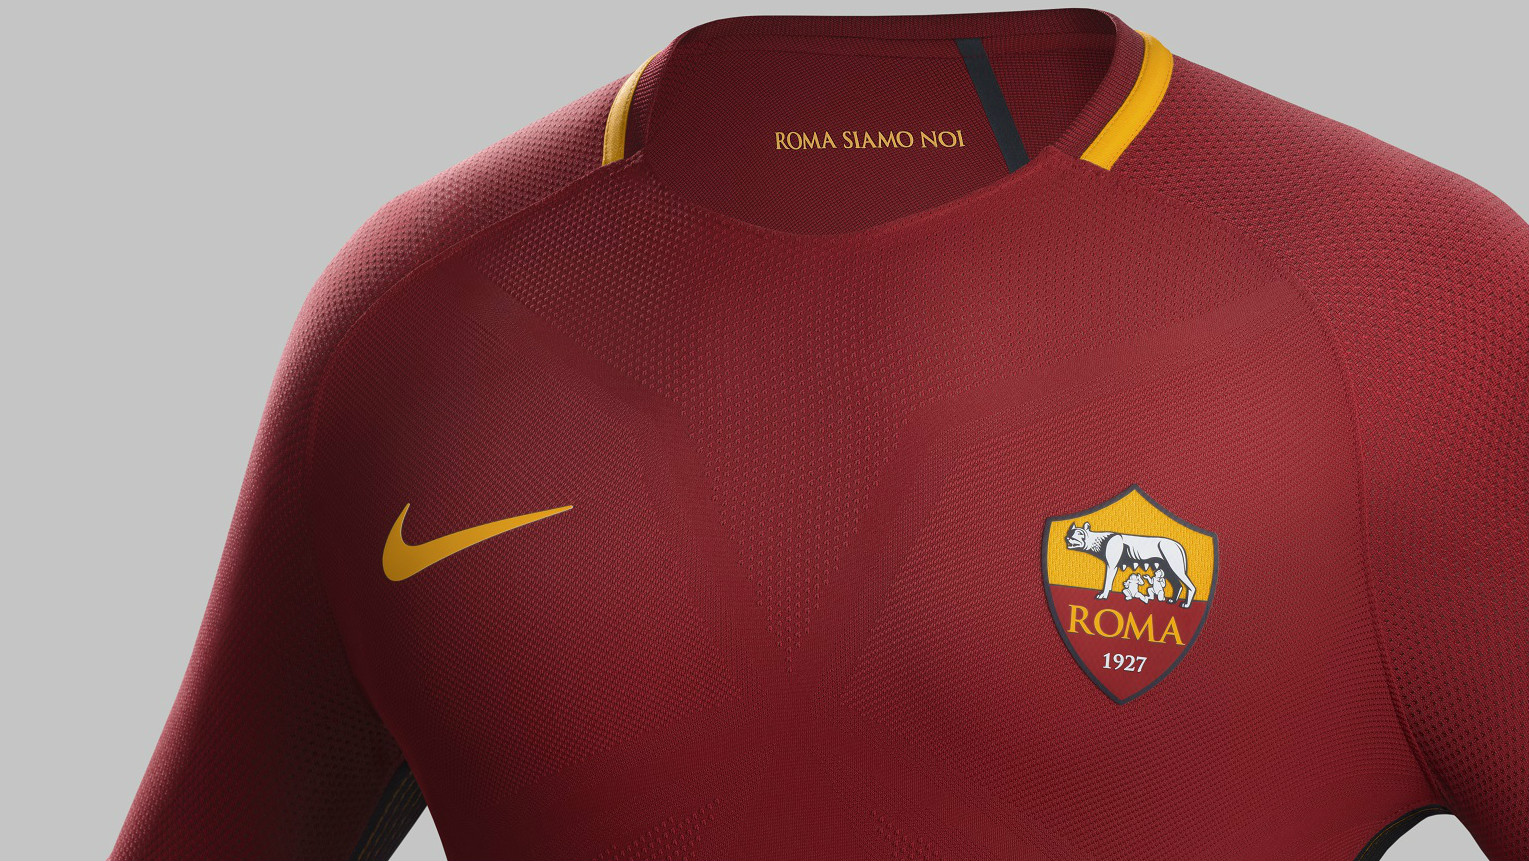 ROMA SERIE A 25052017